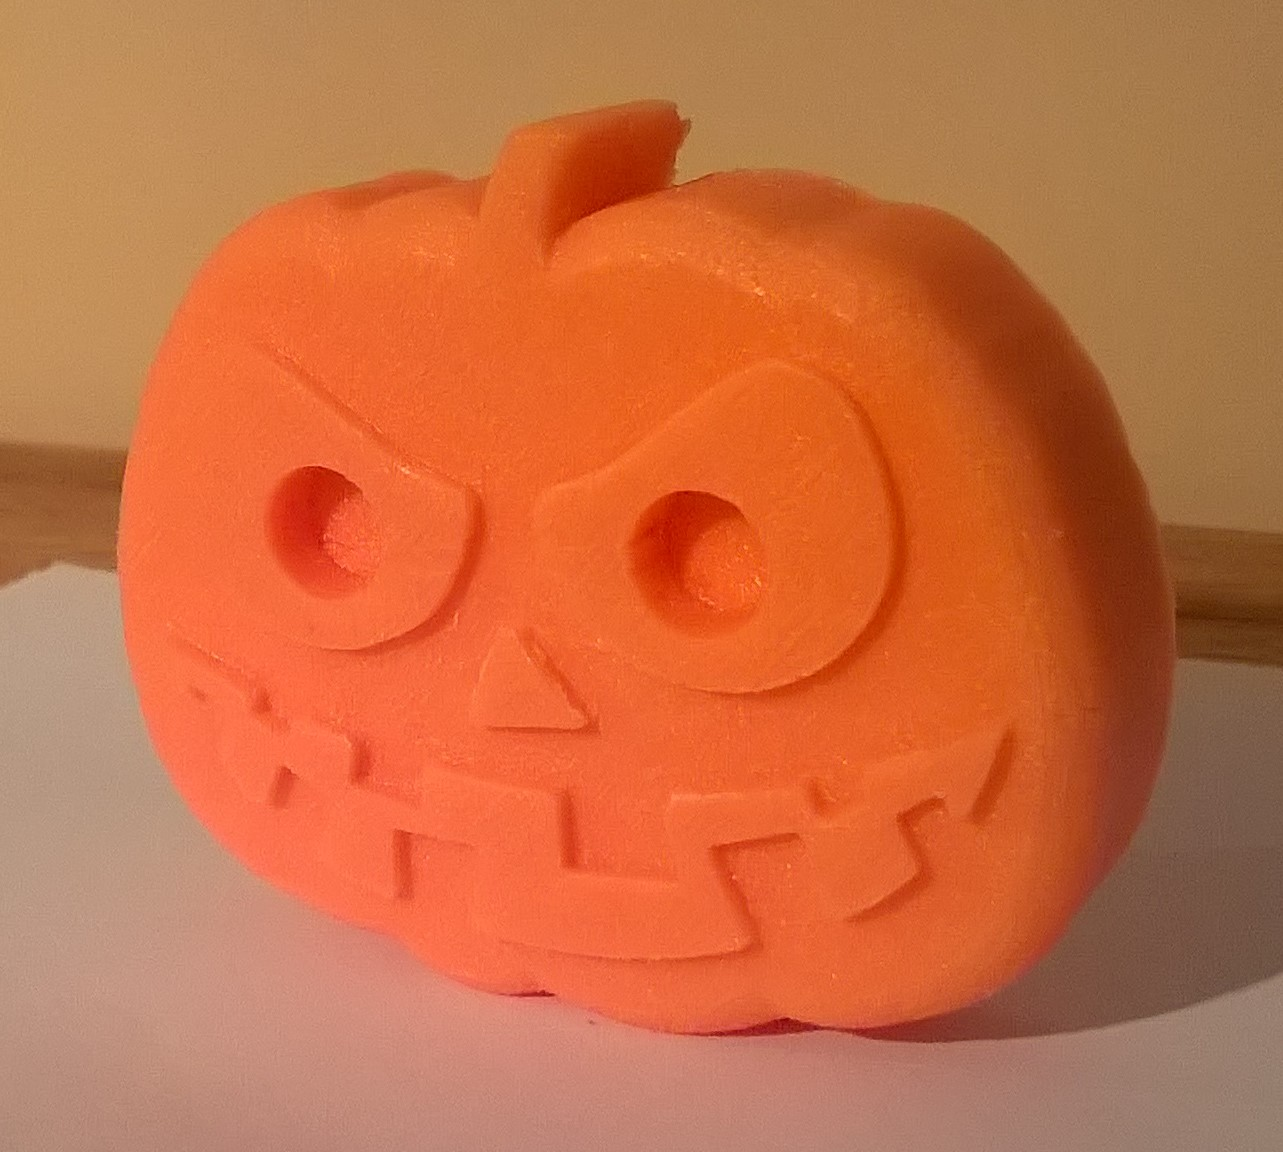 sunk-eyes.jpg Download free STL file Scary Halloween Pumpkin Molds • 3D printable design, crzldesign